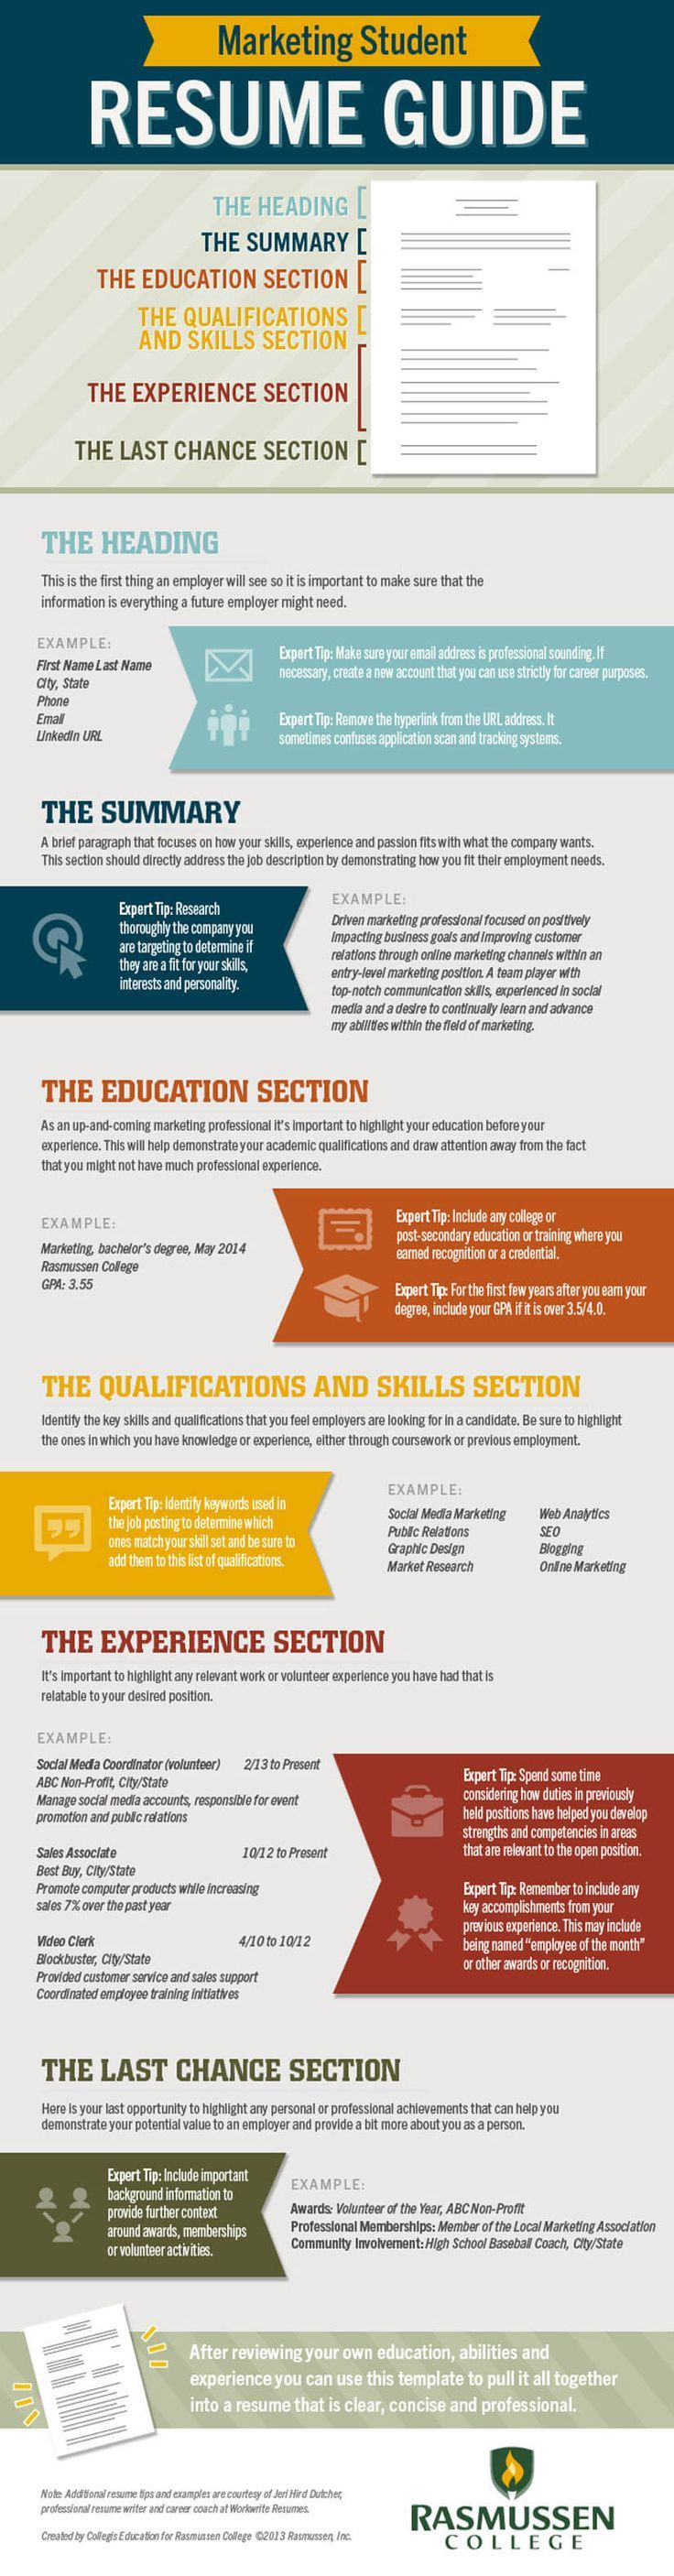 Resume Writing Guide for Marketing Students [Infographic] | Resume Tips